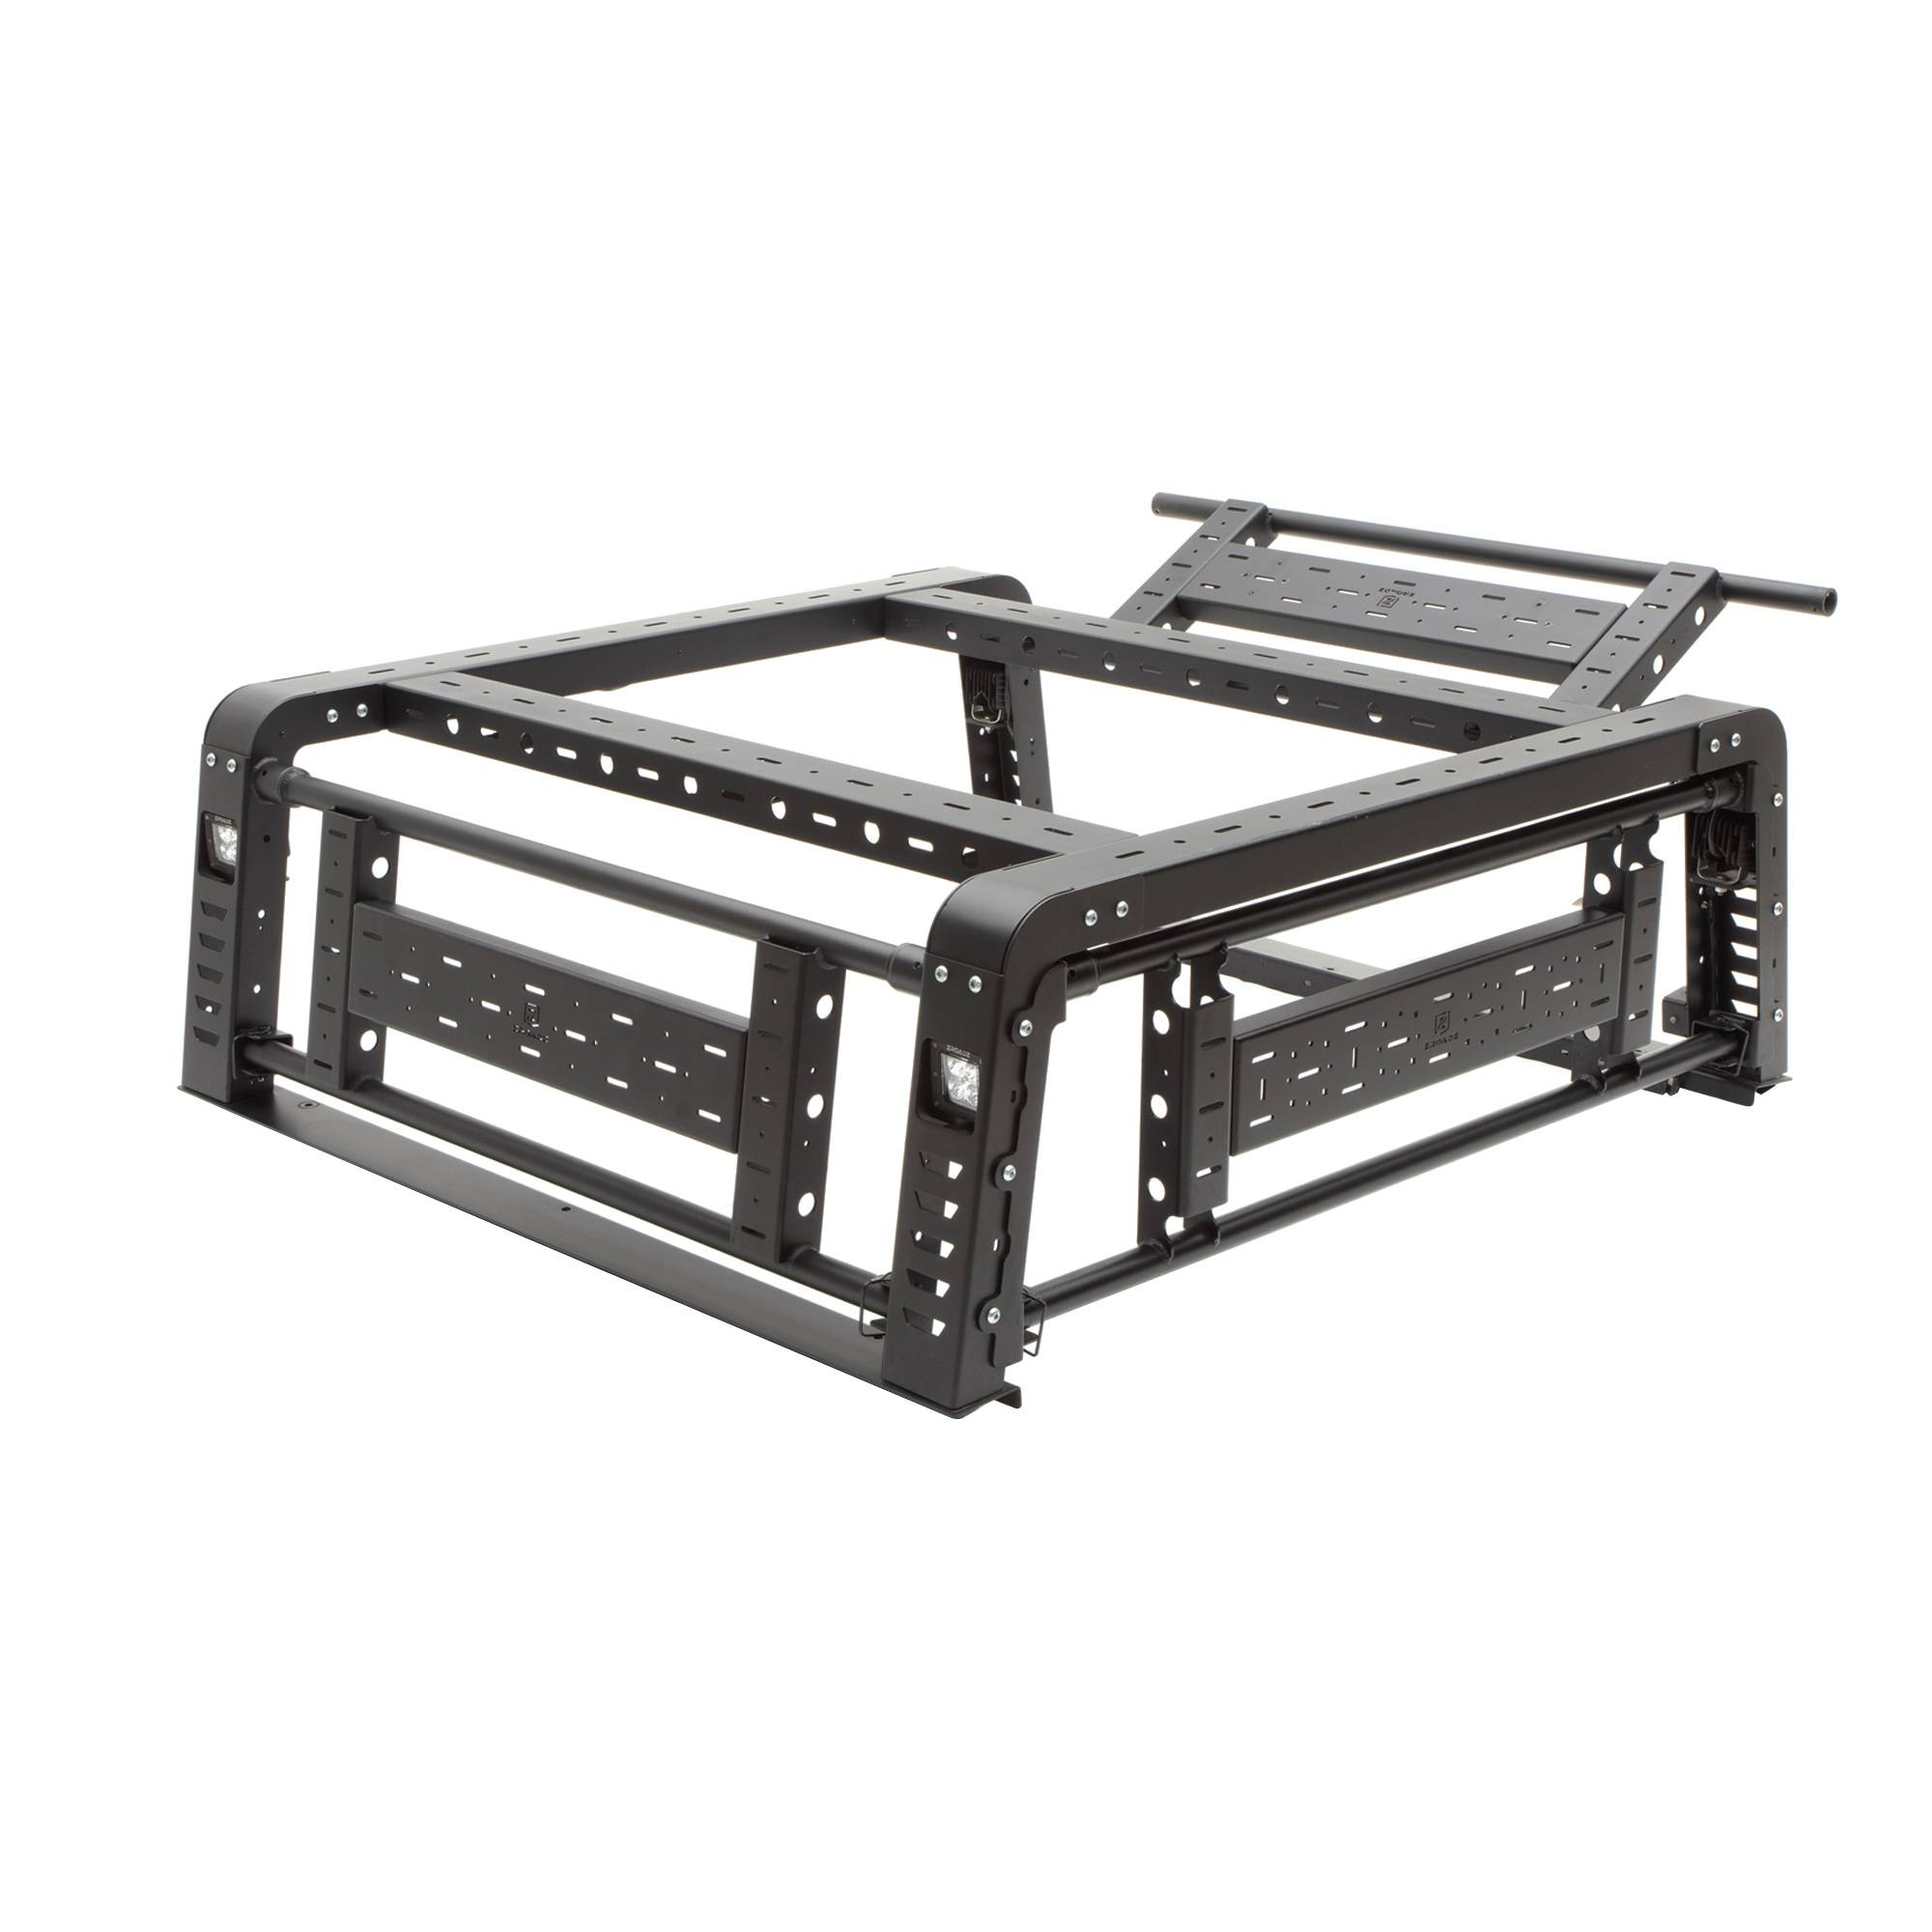 ZROADZ - 2019-2021 Ford Ranger Access Overland Rack With Three Lifting Side Gates - PN #Z835201